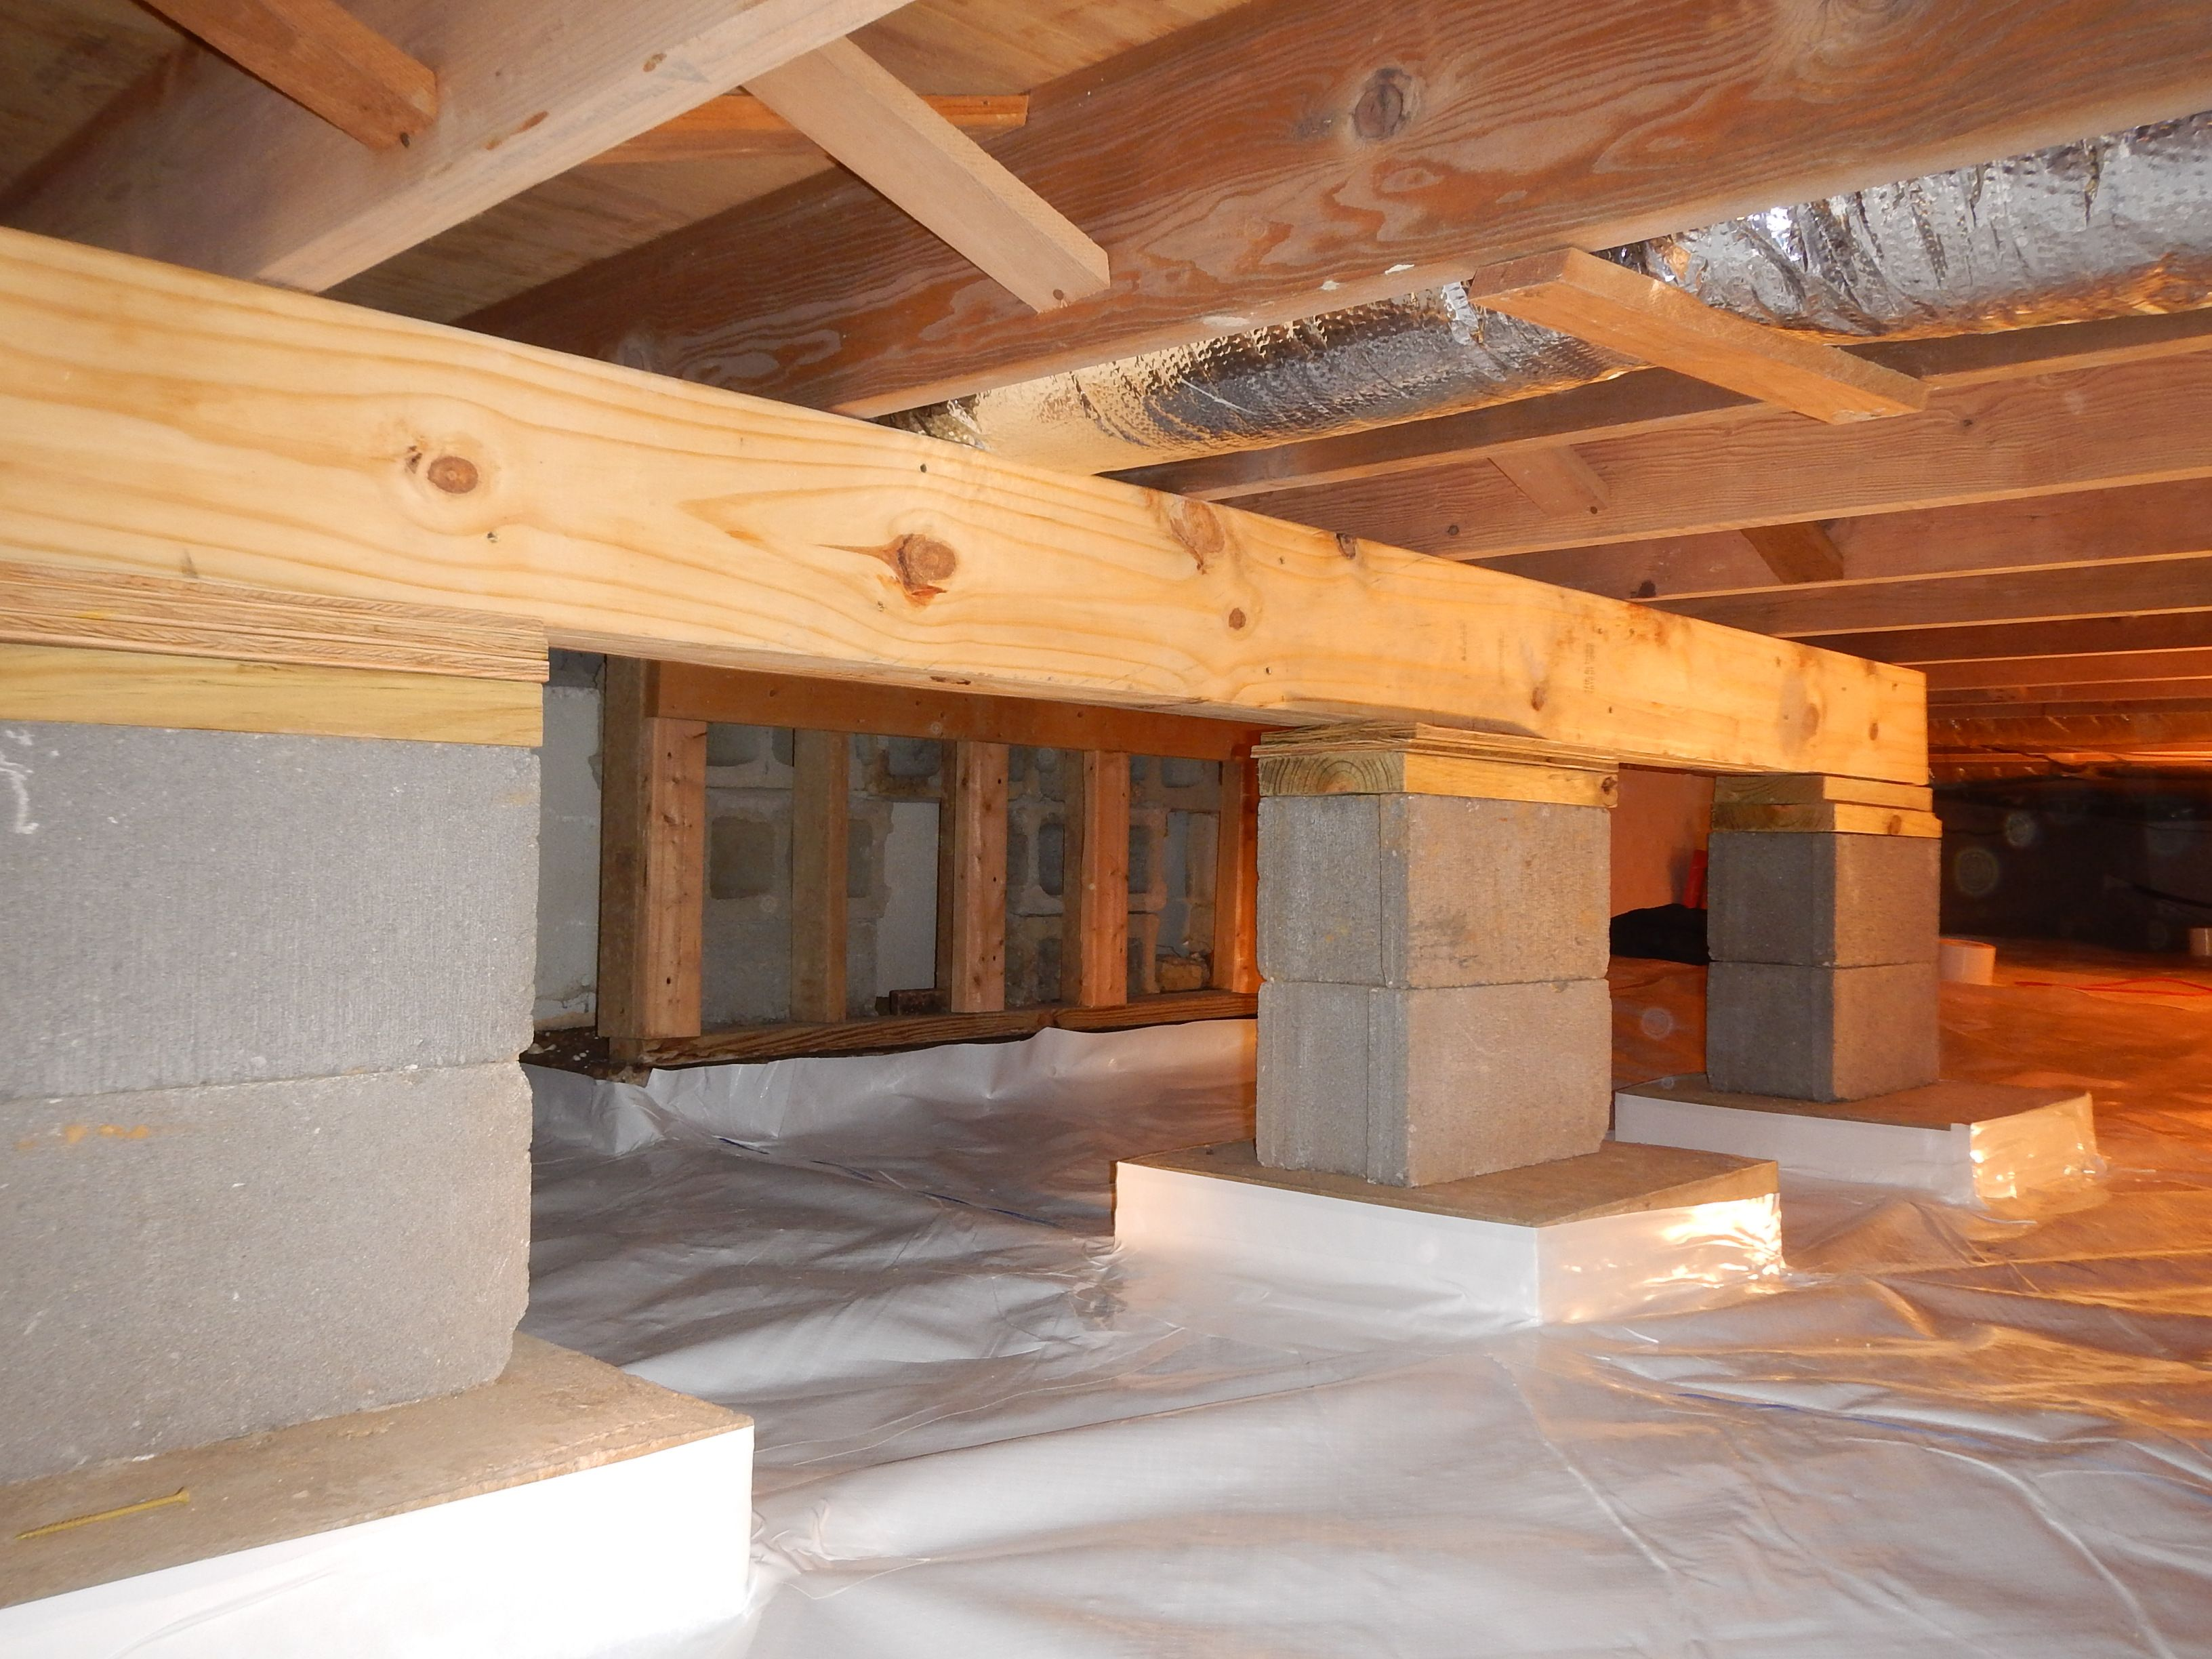 Crawlspace Helper Beam to prevent the joists from